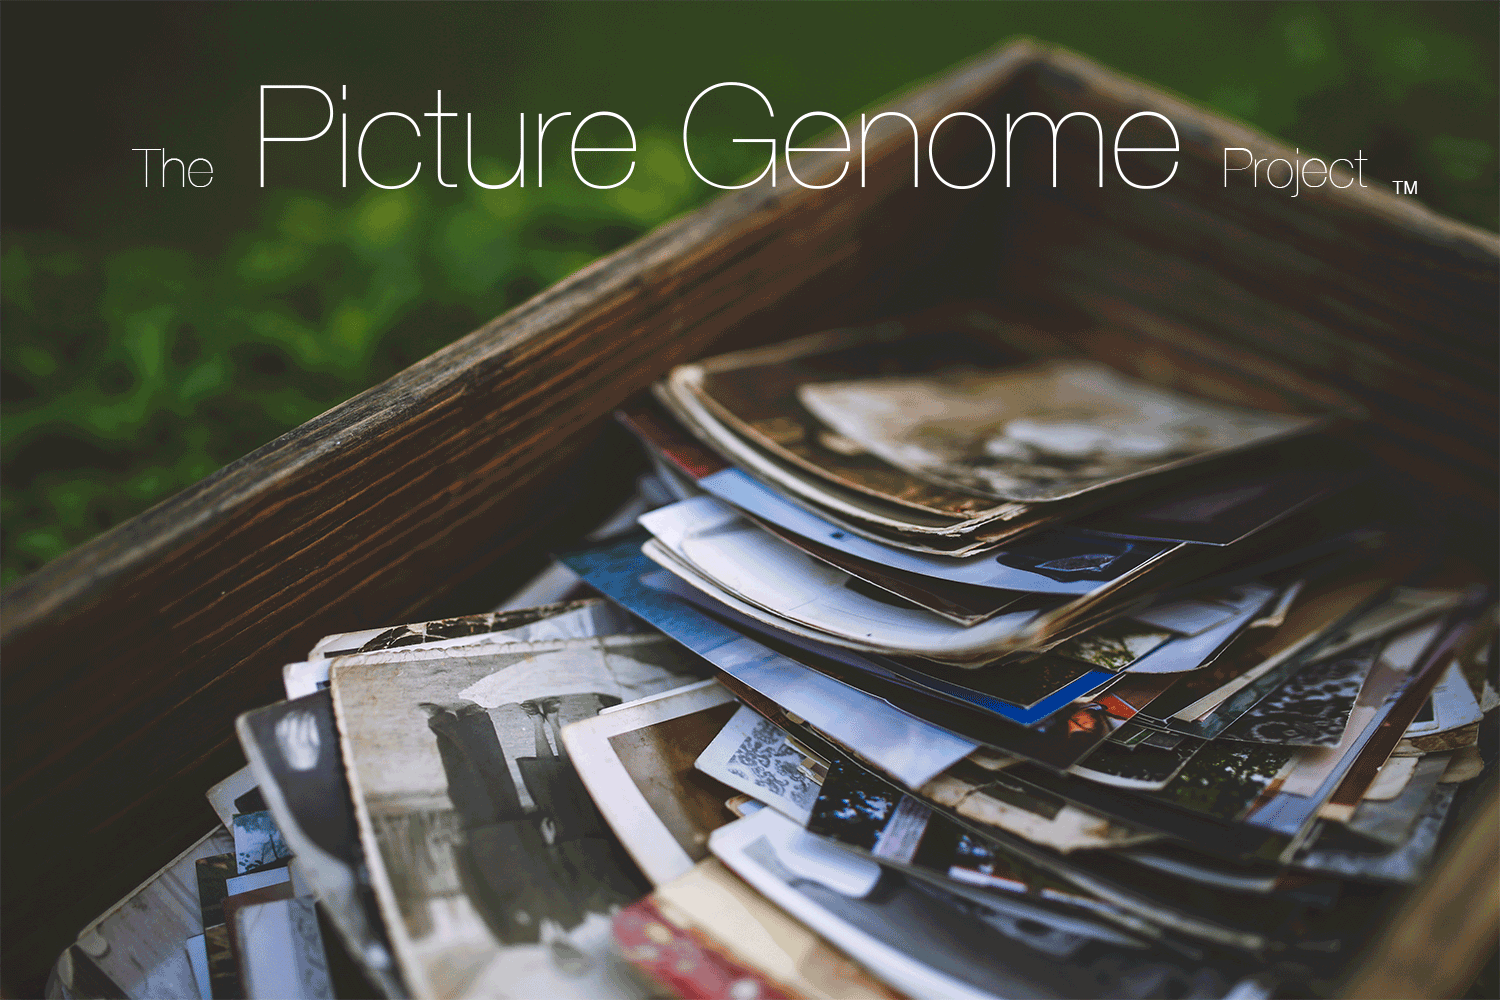 The Picture Genome Project